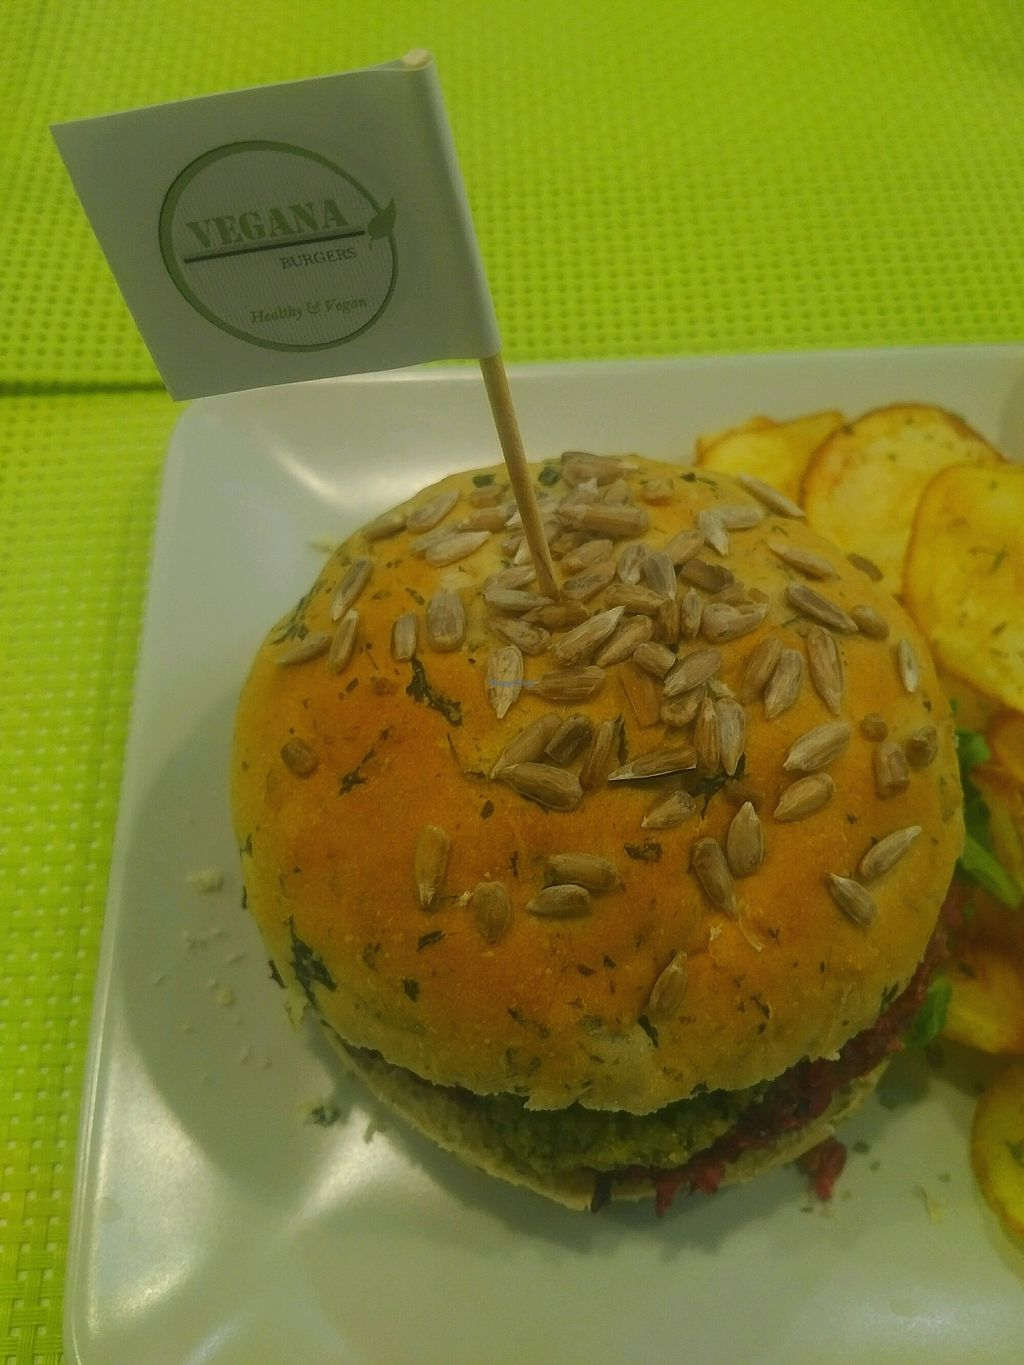 """Photo of Vegana Burgers - Cais do Sodre  by <a href=""""/members/profile/BrightNomad"""">BrightNomad</a> <br/>vegana <br/> October 23, 2017  - <a href='/contact/abuse/image/84623/318092'>Report</a>"""